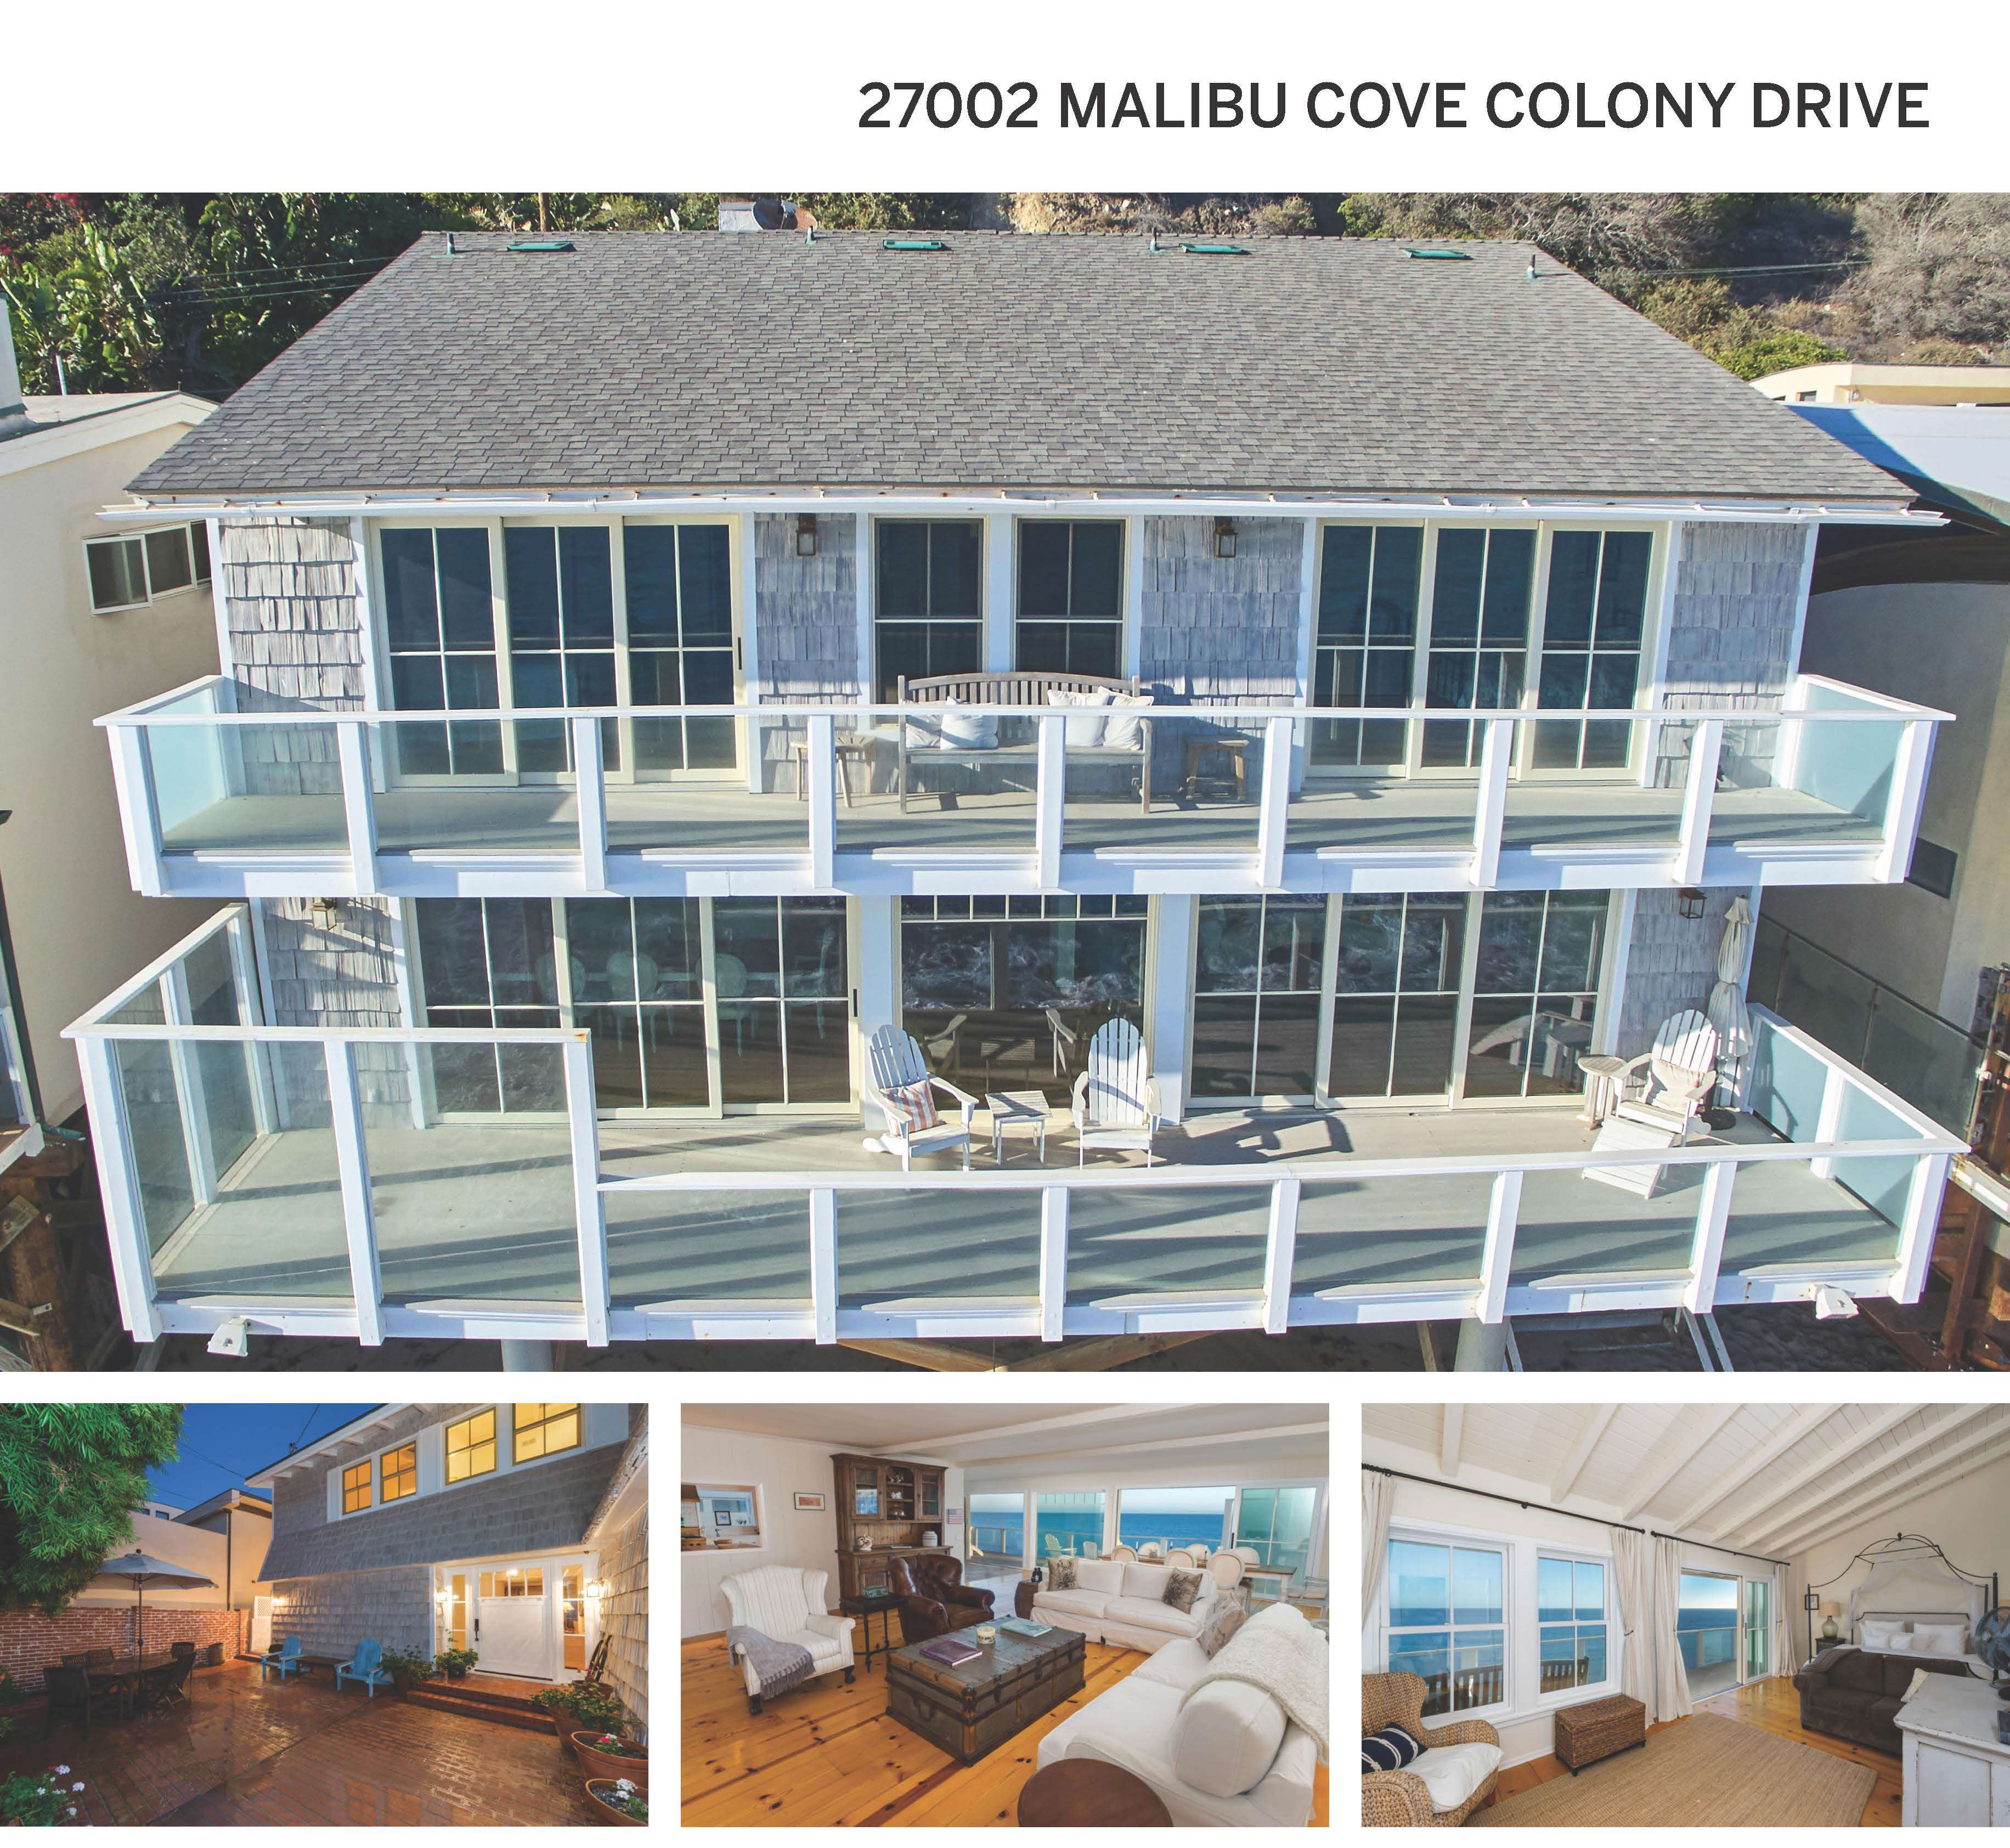 NEW: Malibu 3000 sqft+ In Guard Gated Community